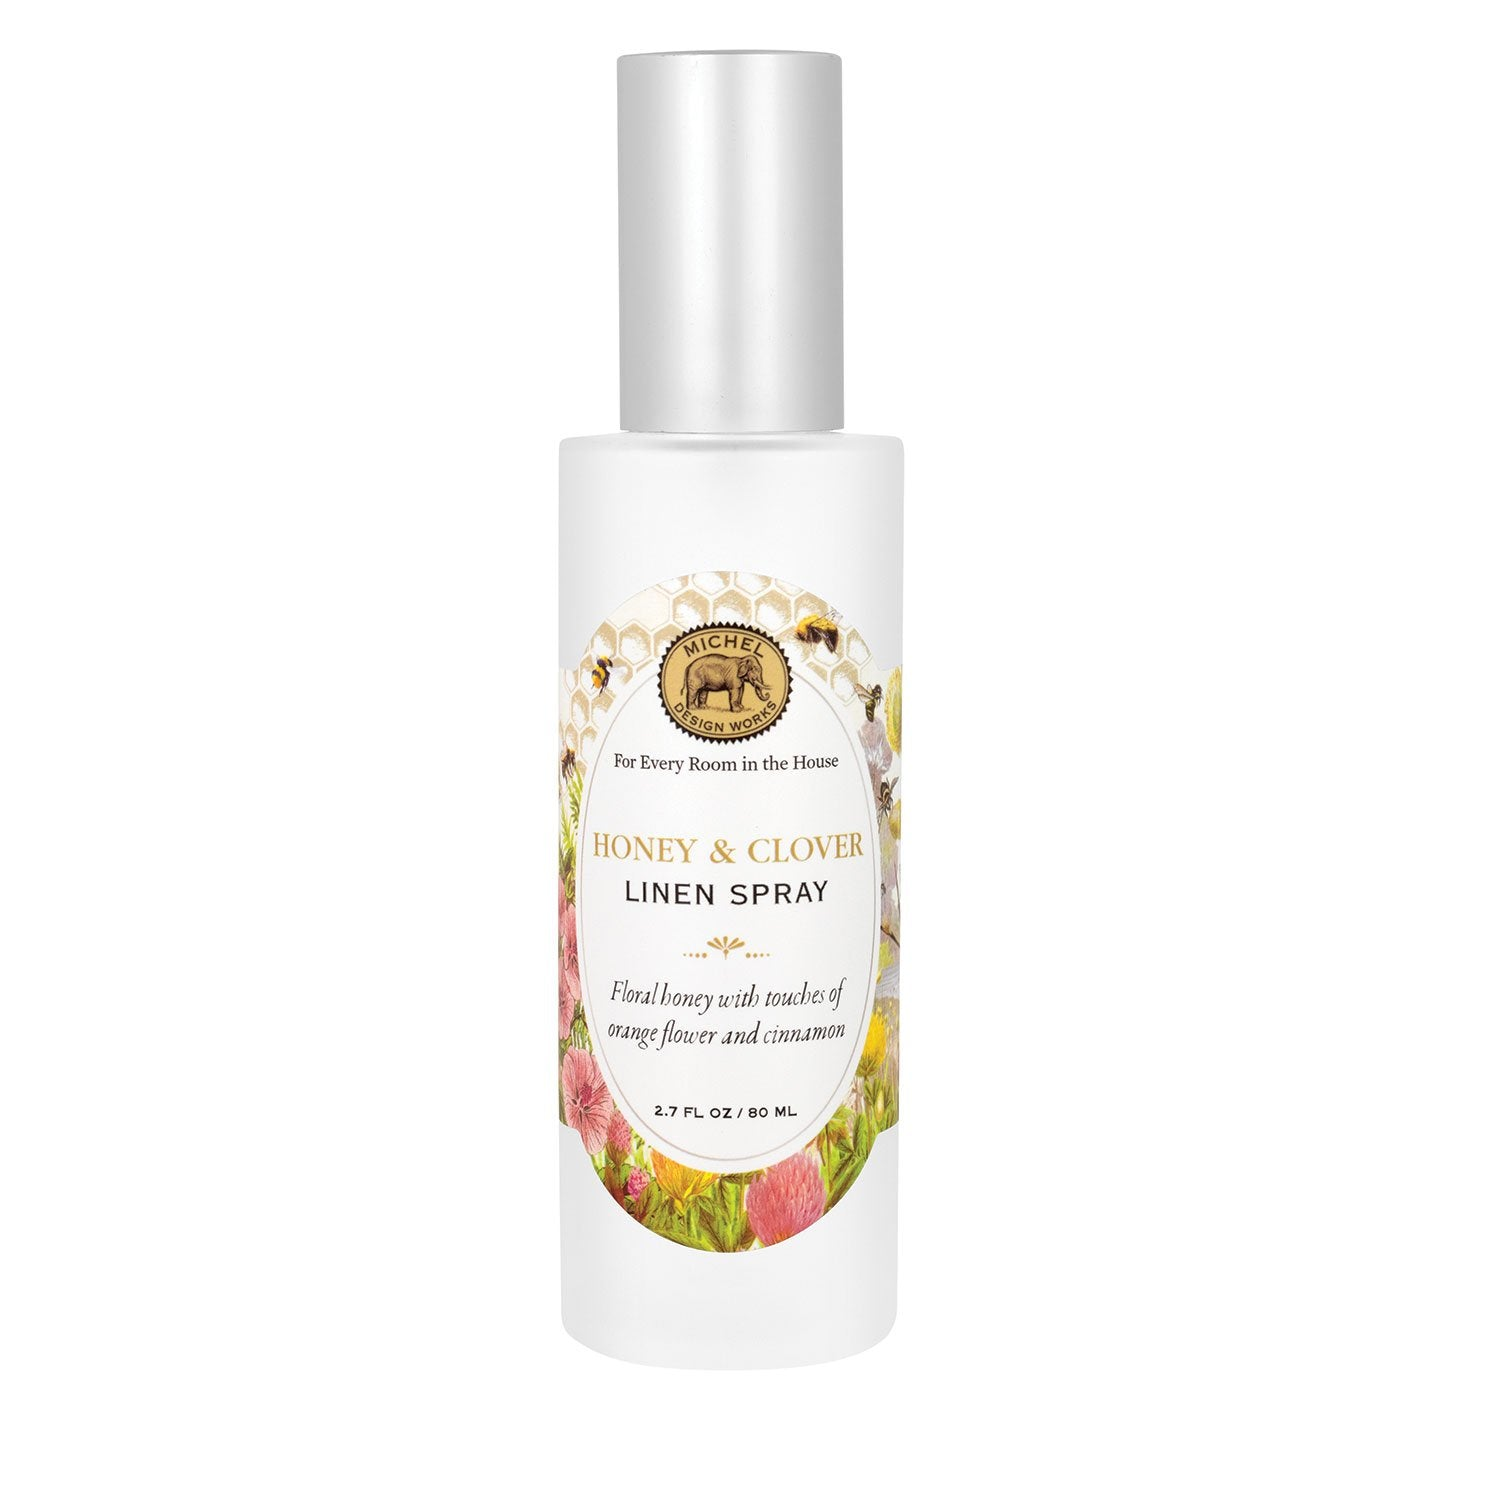 Honey & Clover Linen Spray